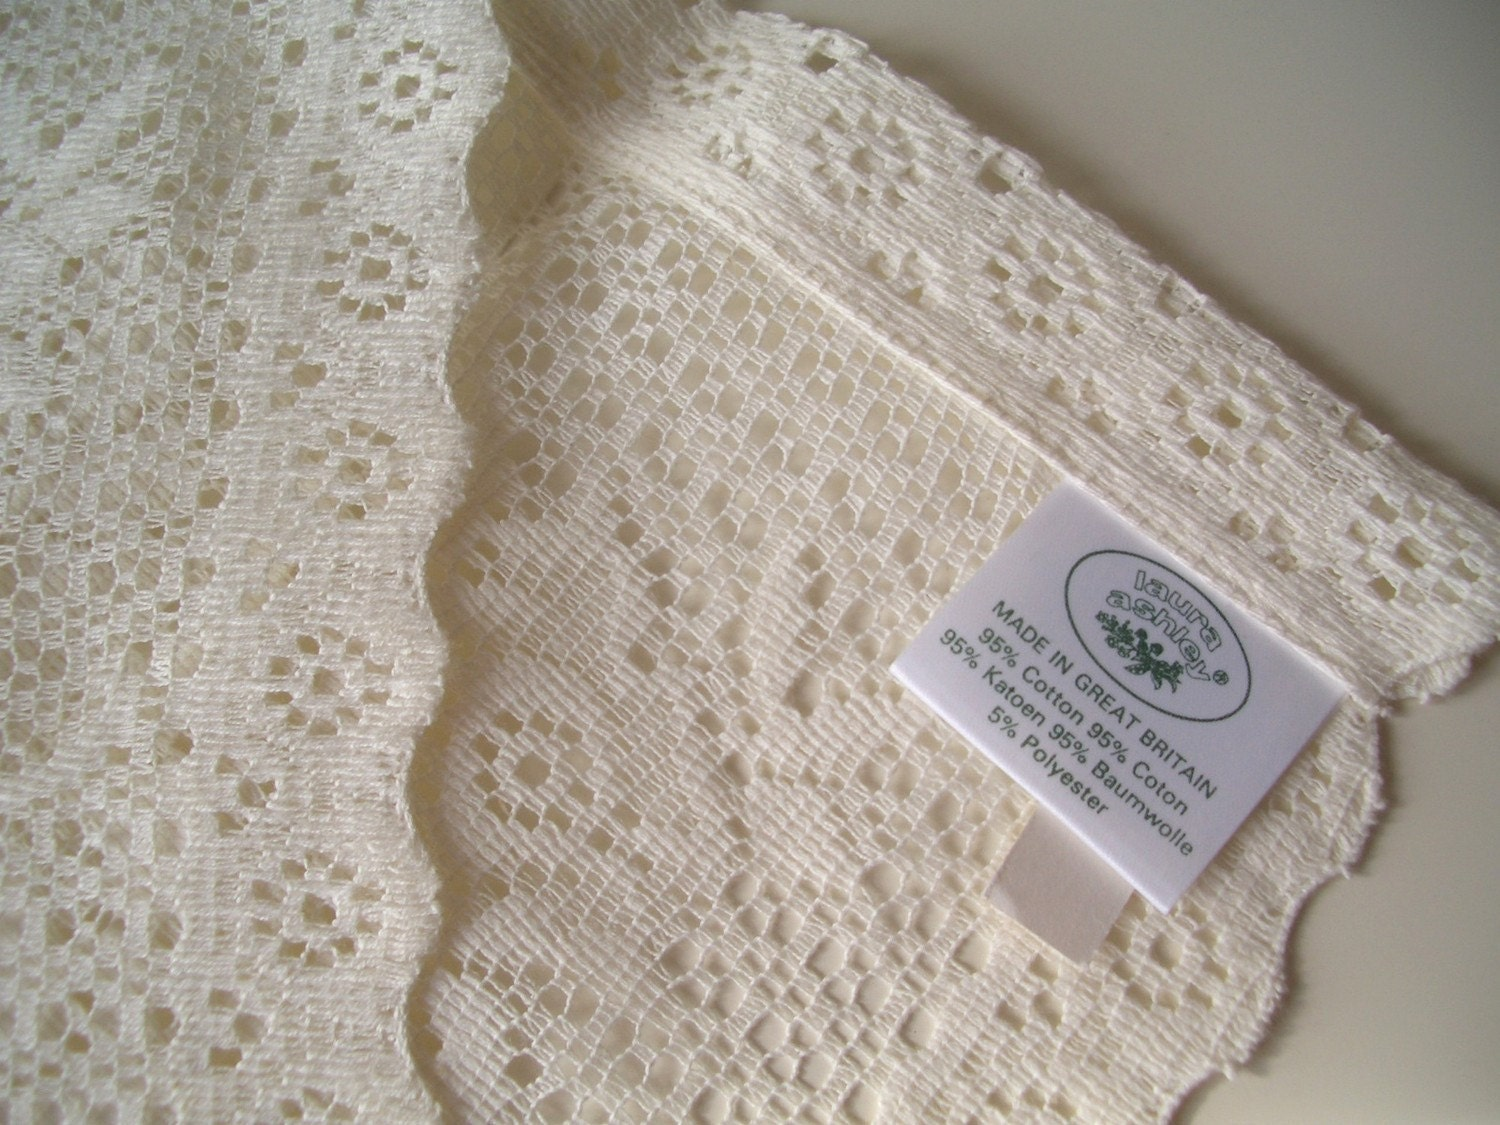 Vintage Laura Ashley Nottingham Lace Napkins